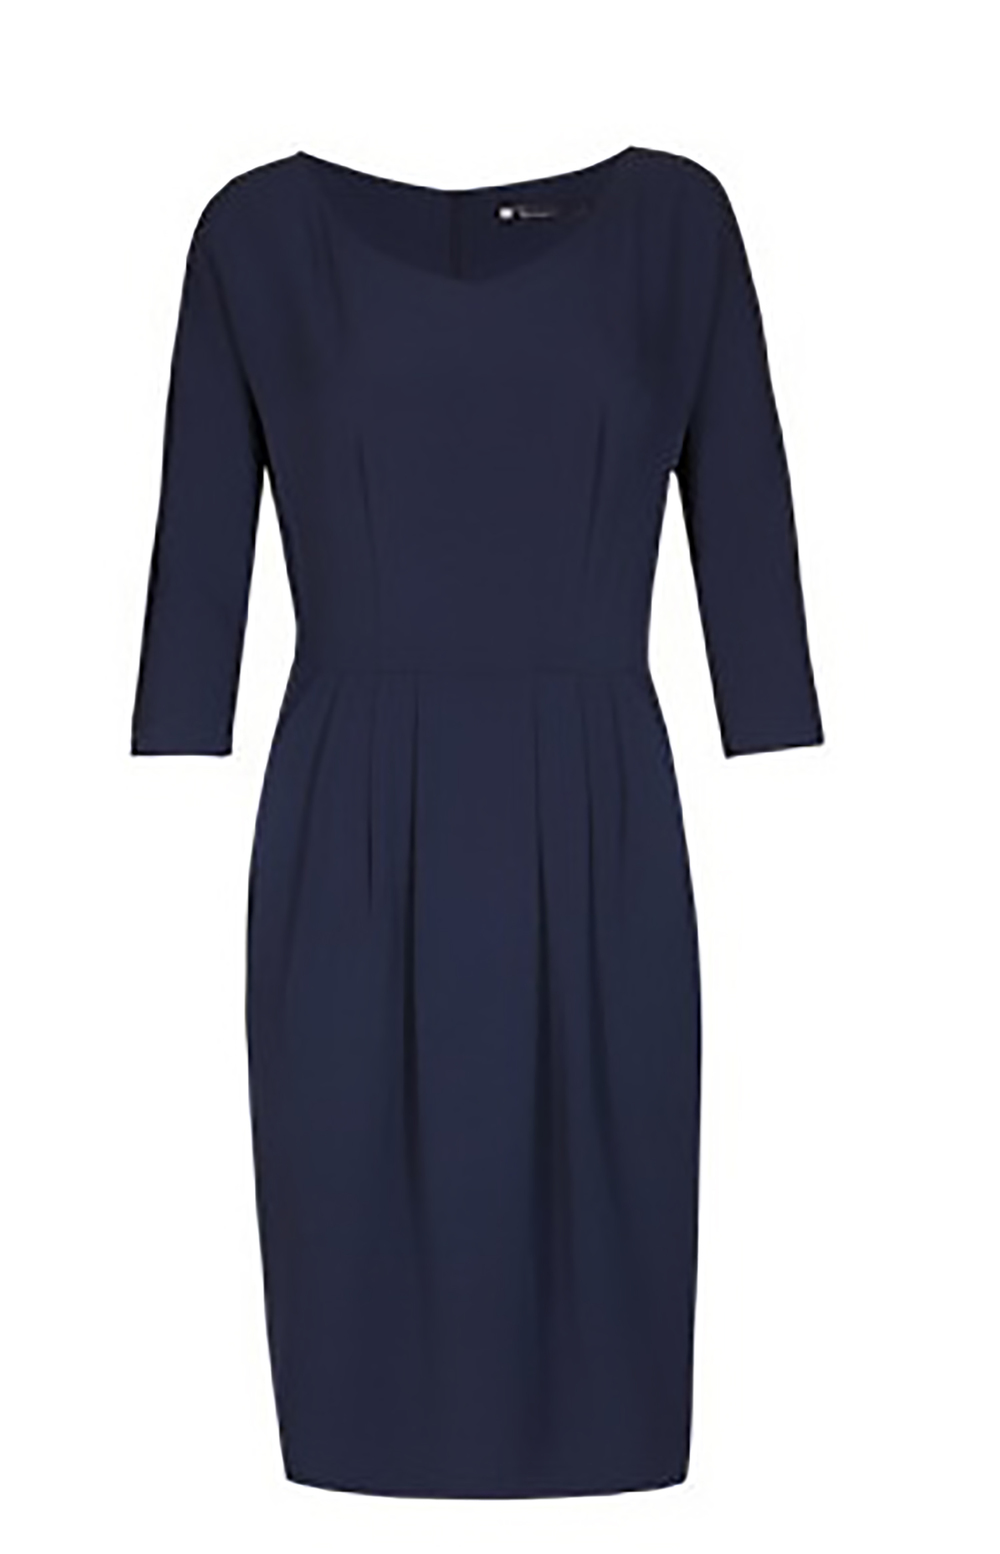 M&S best of british pleated drape dress M&S 1500.jpg